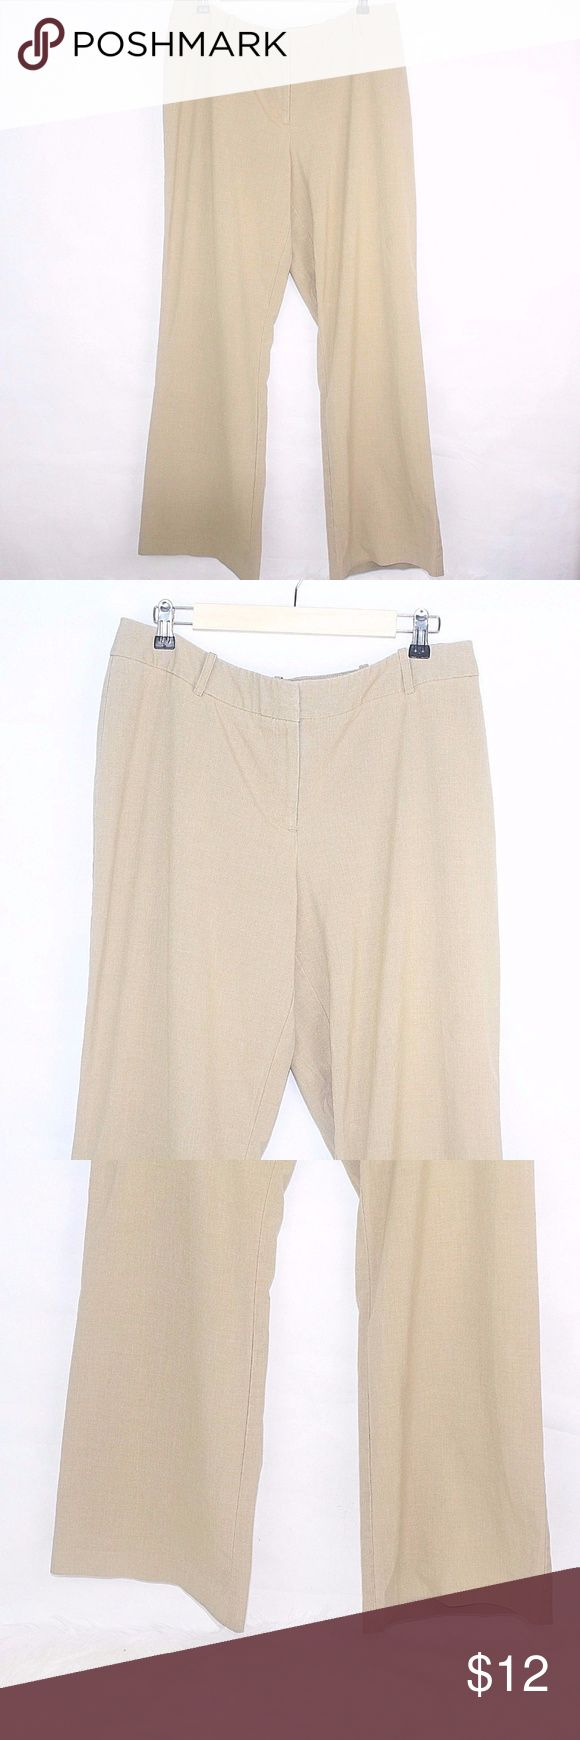 WORTHINGTON Plus Size CURVY FIT Loose Straight Pa WORTHINGTON Plus Size CURVY FIT Loose Straight Pants Sz 14 A2 Work Career 17 1/2 Inches Rise 11 Inches Inseam 32 Inches 63% Polyester 33% Rayon 4% Spandex Some wear fading at closure Worthington Pants Straight Leg